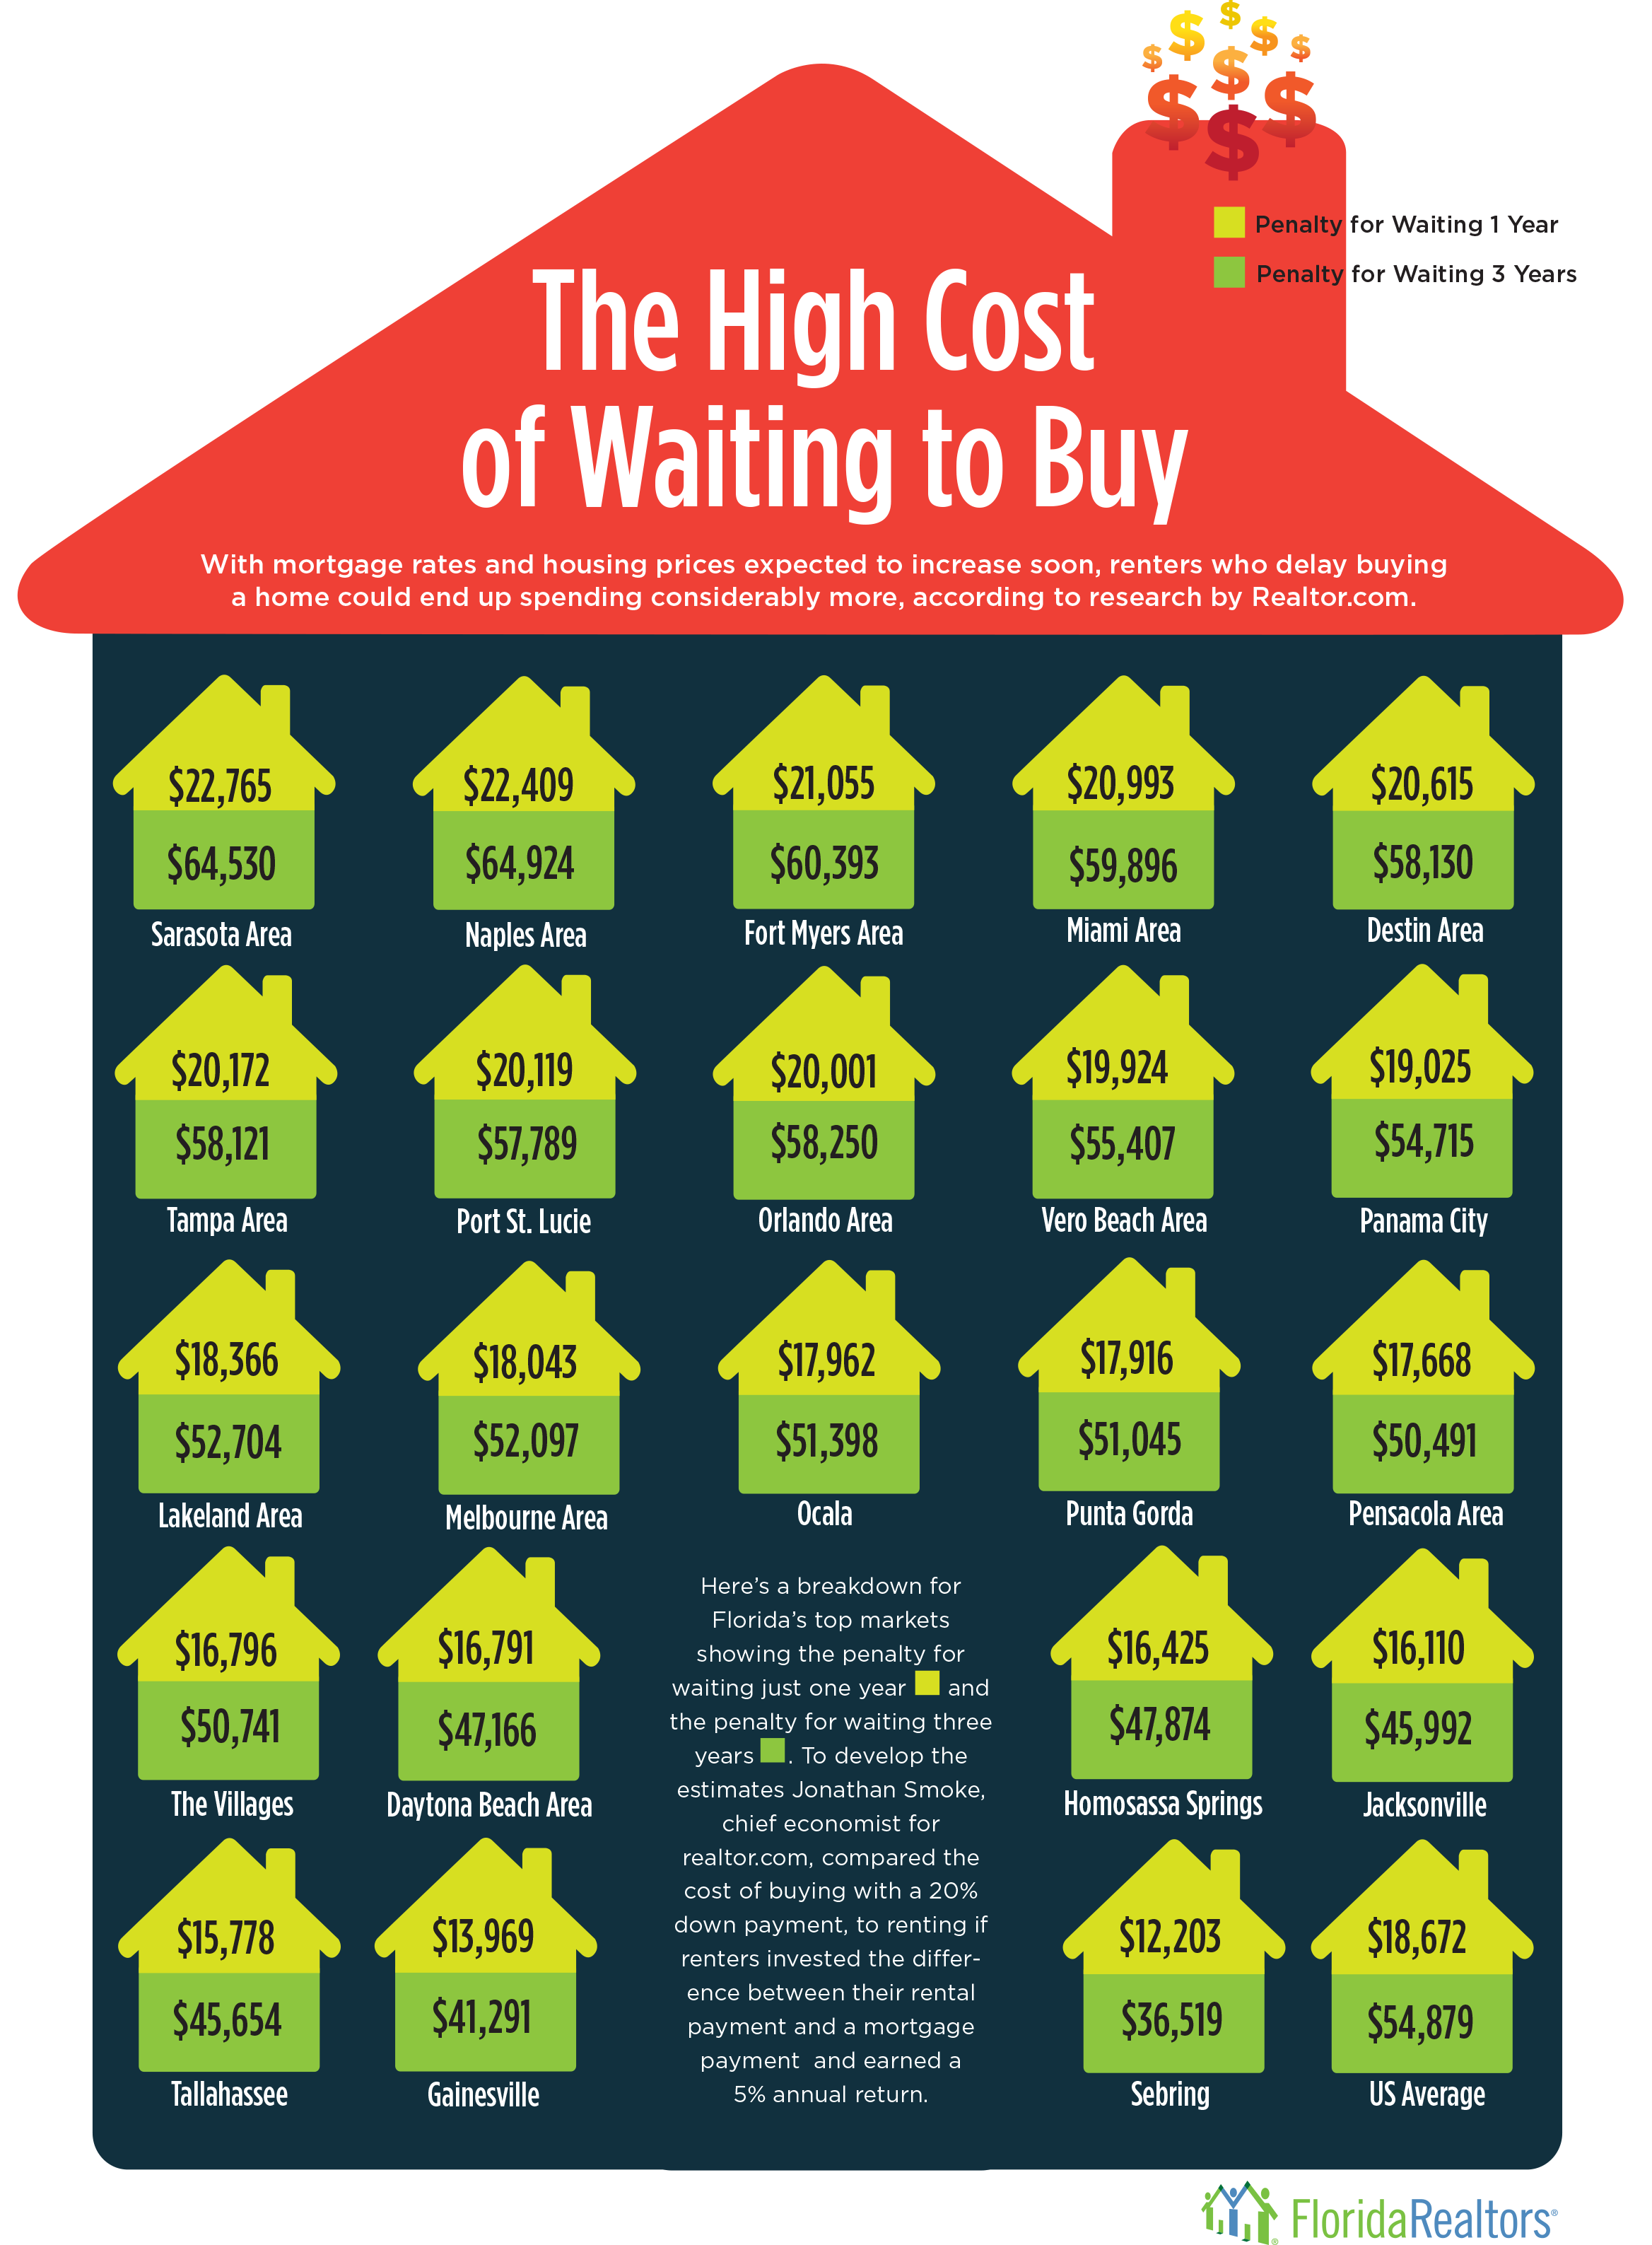 The High Cost of Waiting to Buy